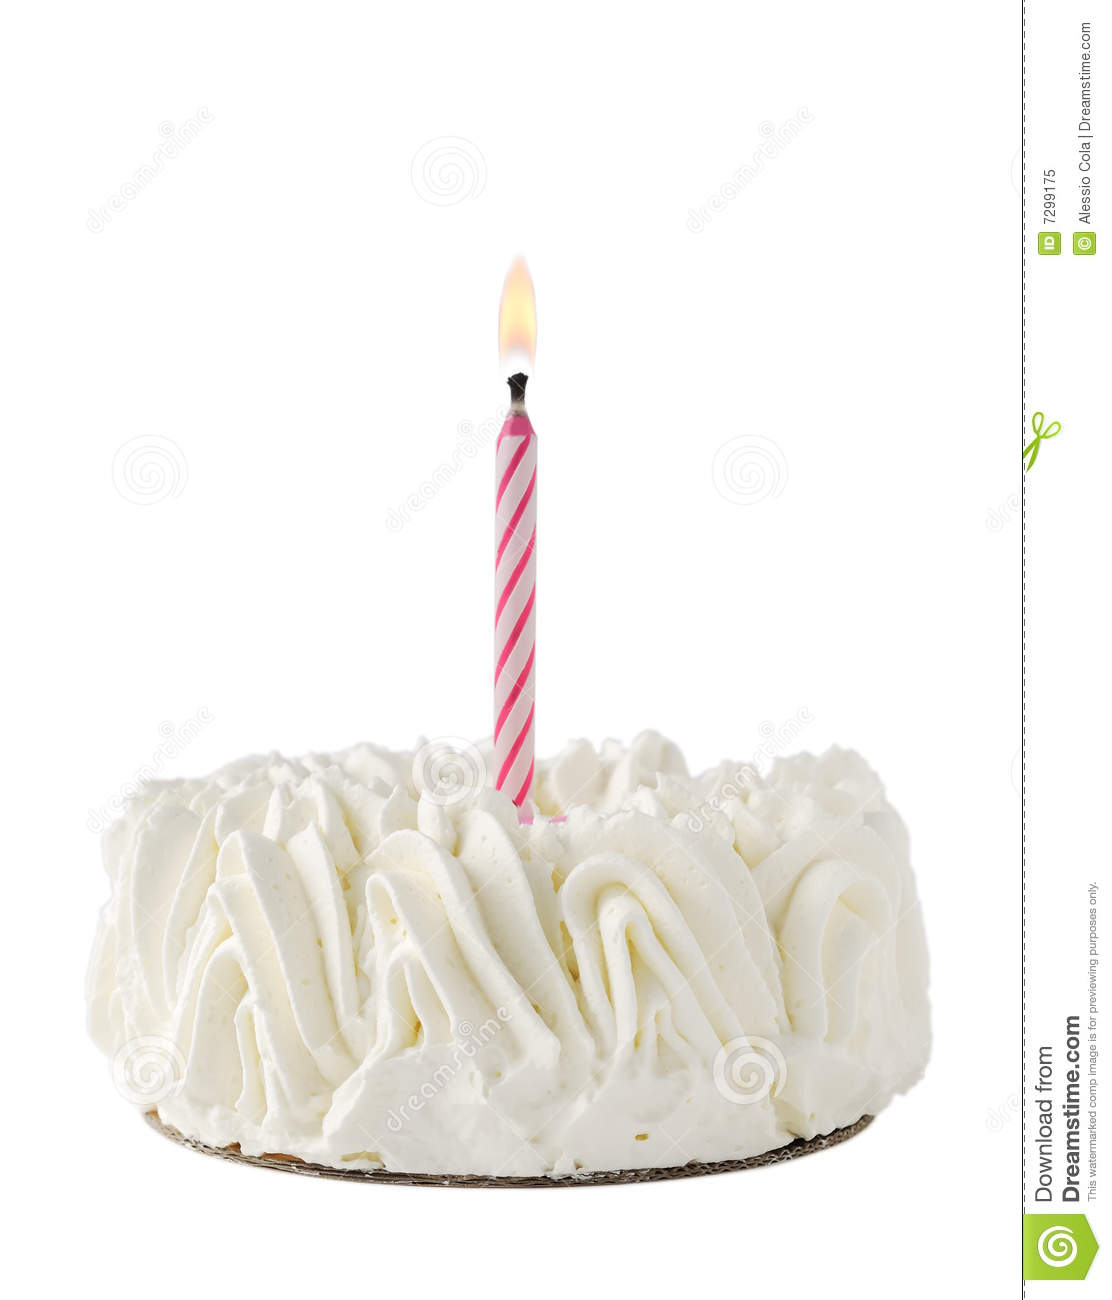 Happy Birthday Cake whit one pink candle